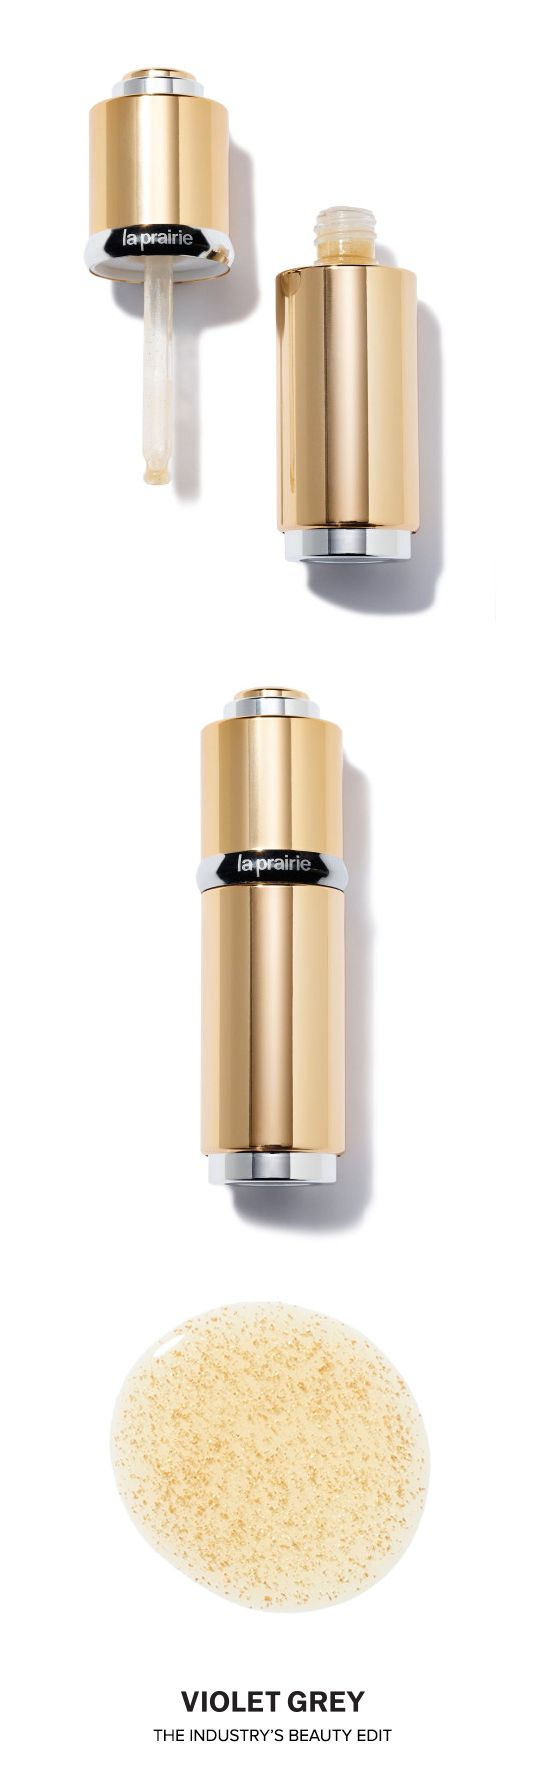 La Prairie Cellular Radiance Concentrate Pure Gold Serum is truly the gold standard of de-aging. This super serum fills fine lines in only one hour & lasts for five, all while giving your face a golden glow - only a single drop required.   #VioletGrey, the Industry's Beauty Edit